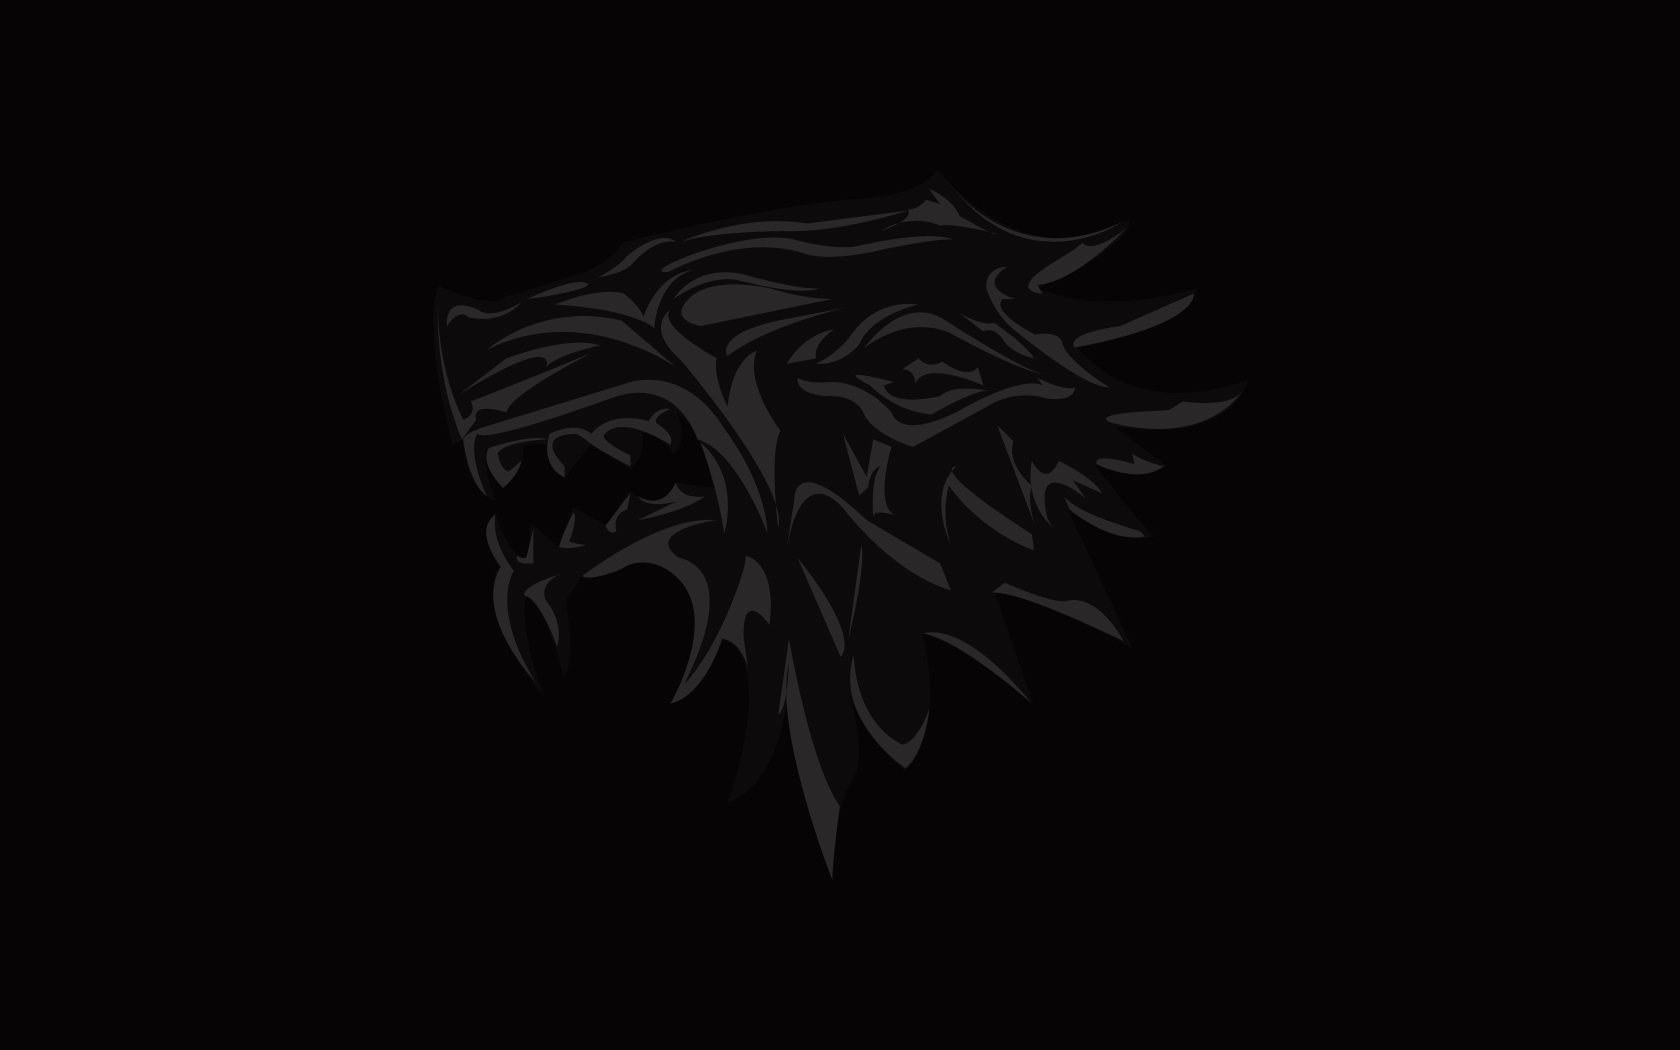 Game Of Thrones Stark Direwolf Wallpapers Morrus Unofficial